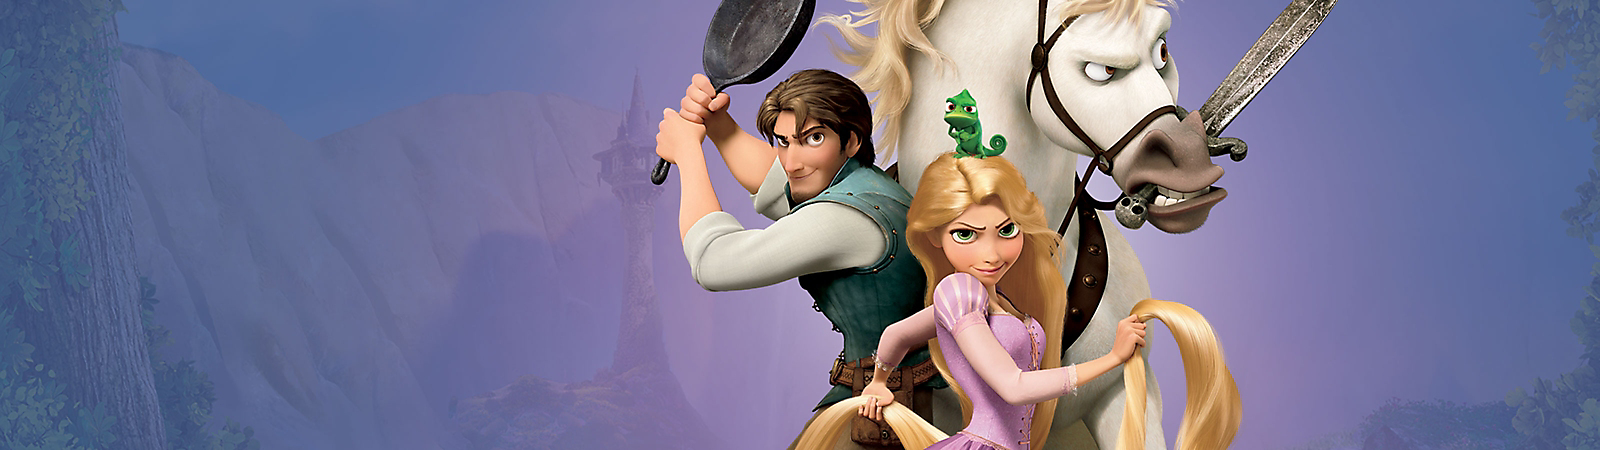 Background image of Tangled